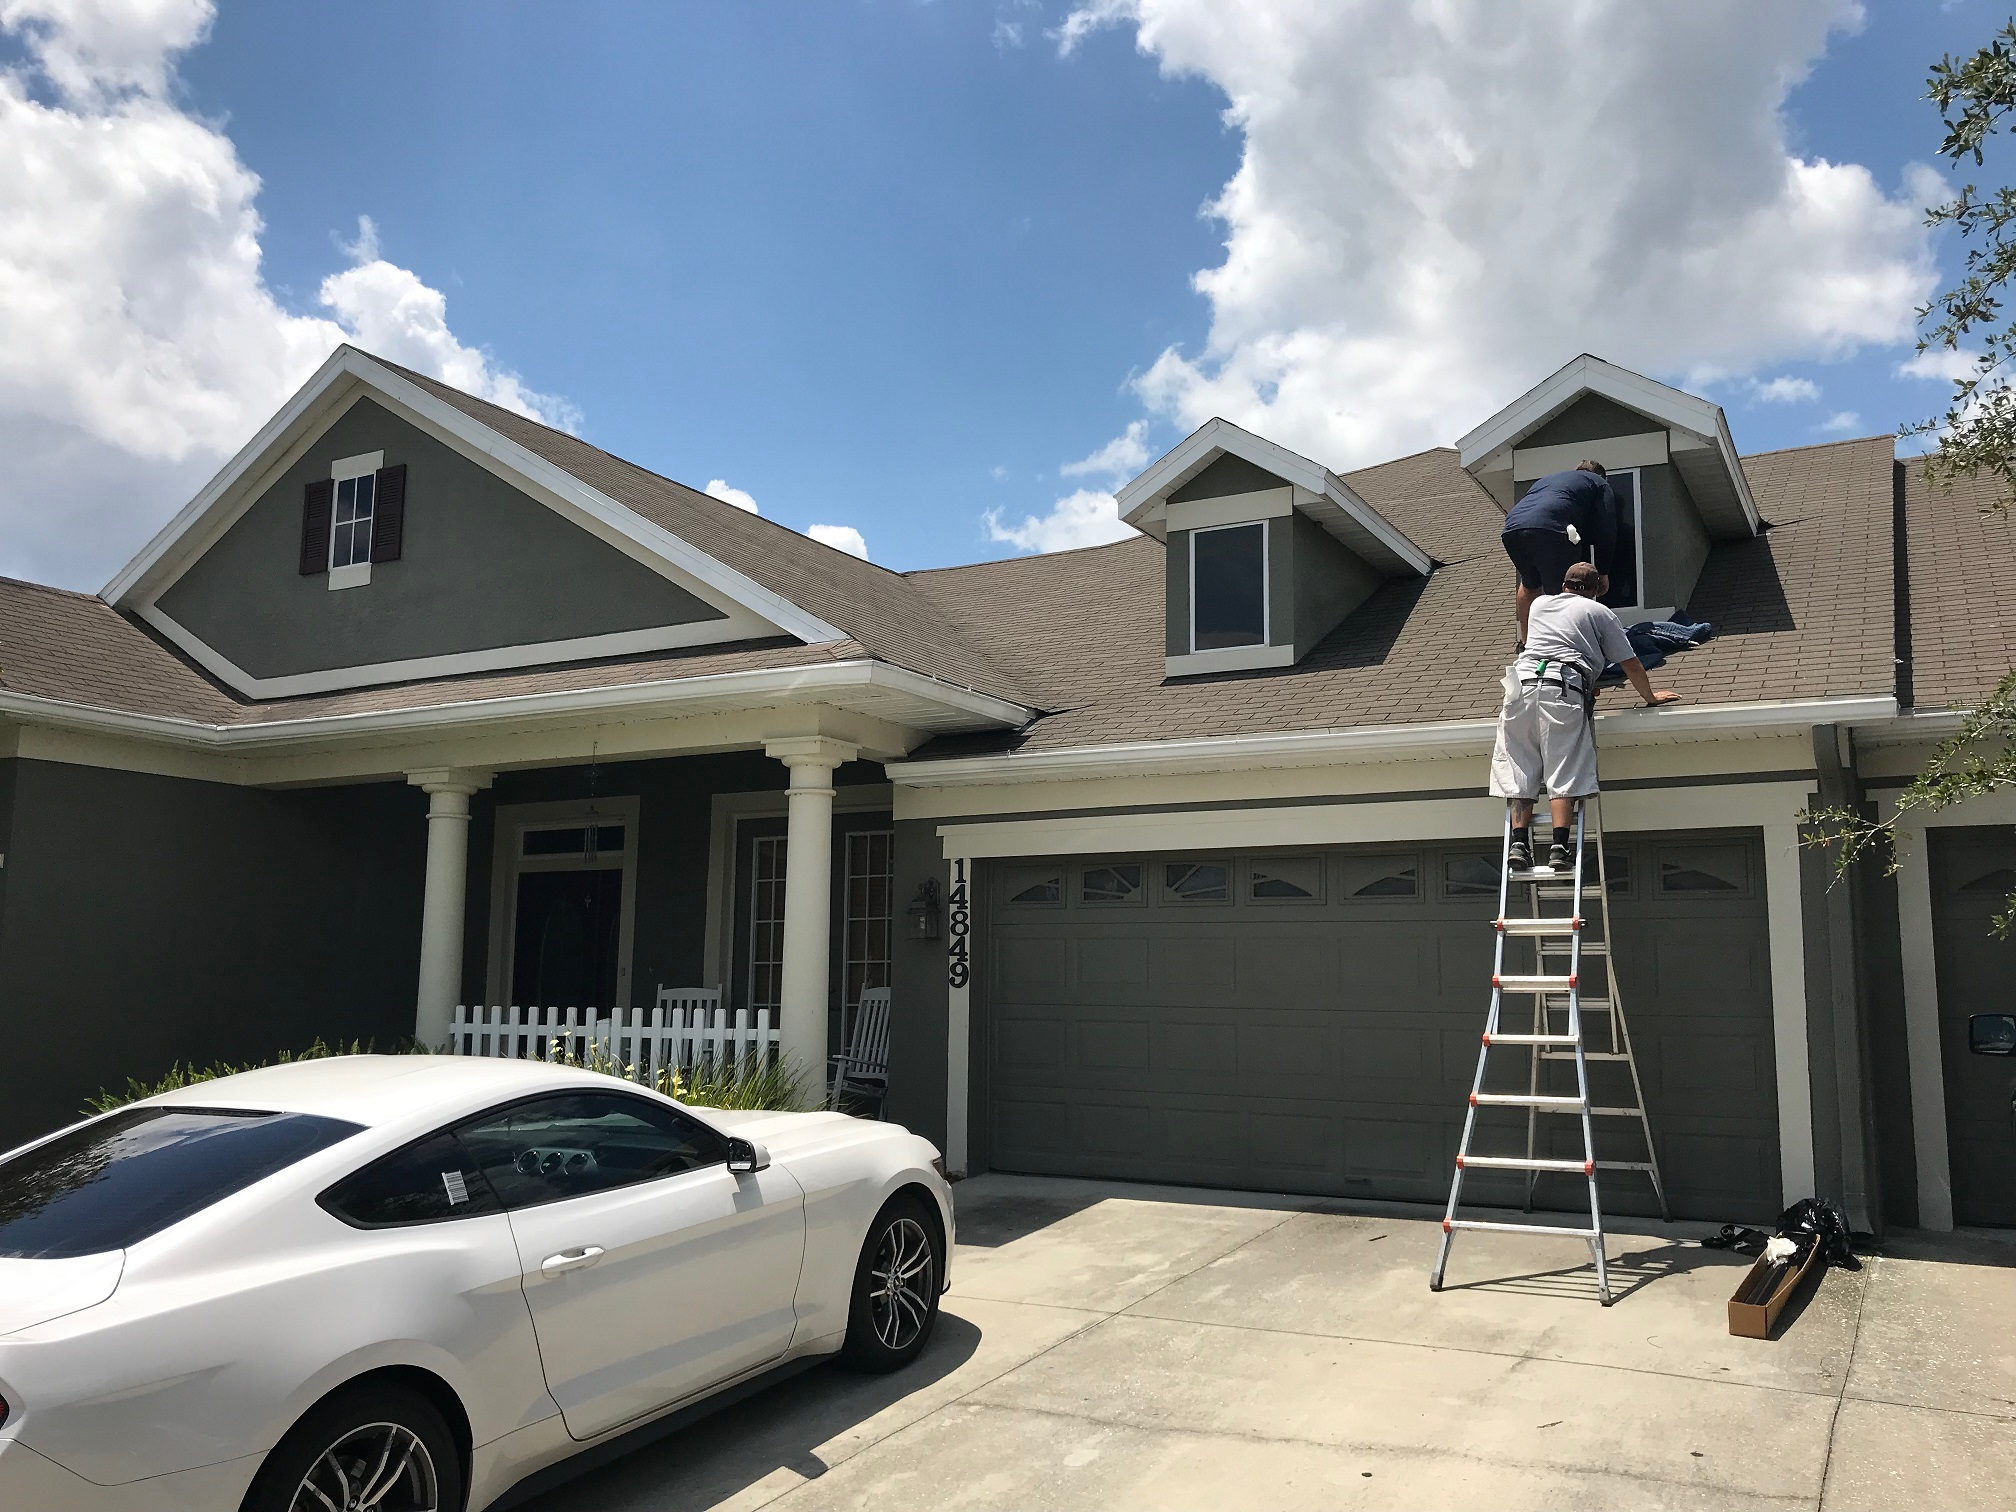 Residential window tint in Waterford Lake in Avalon Park